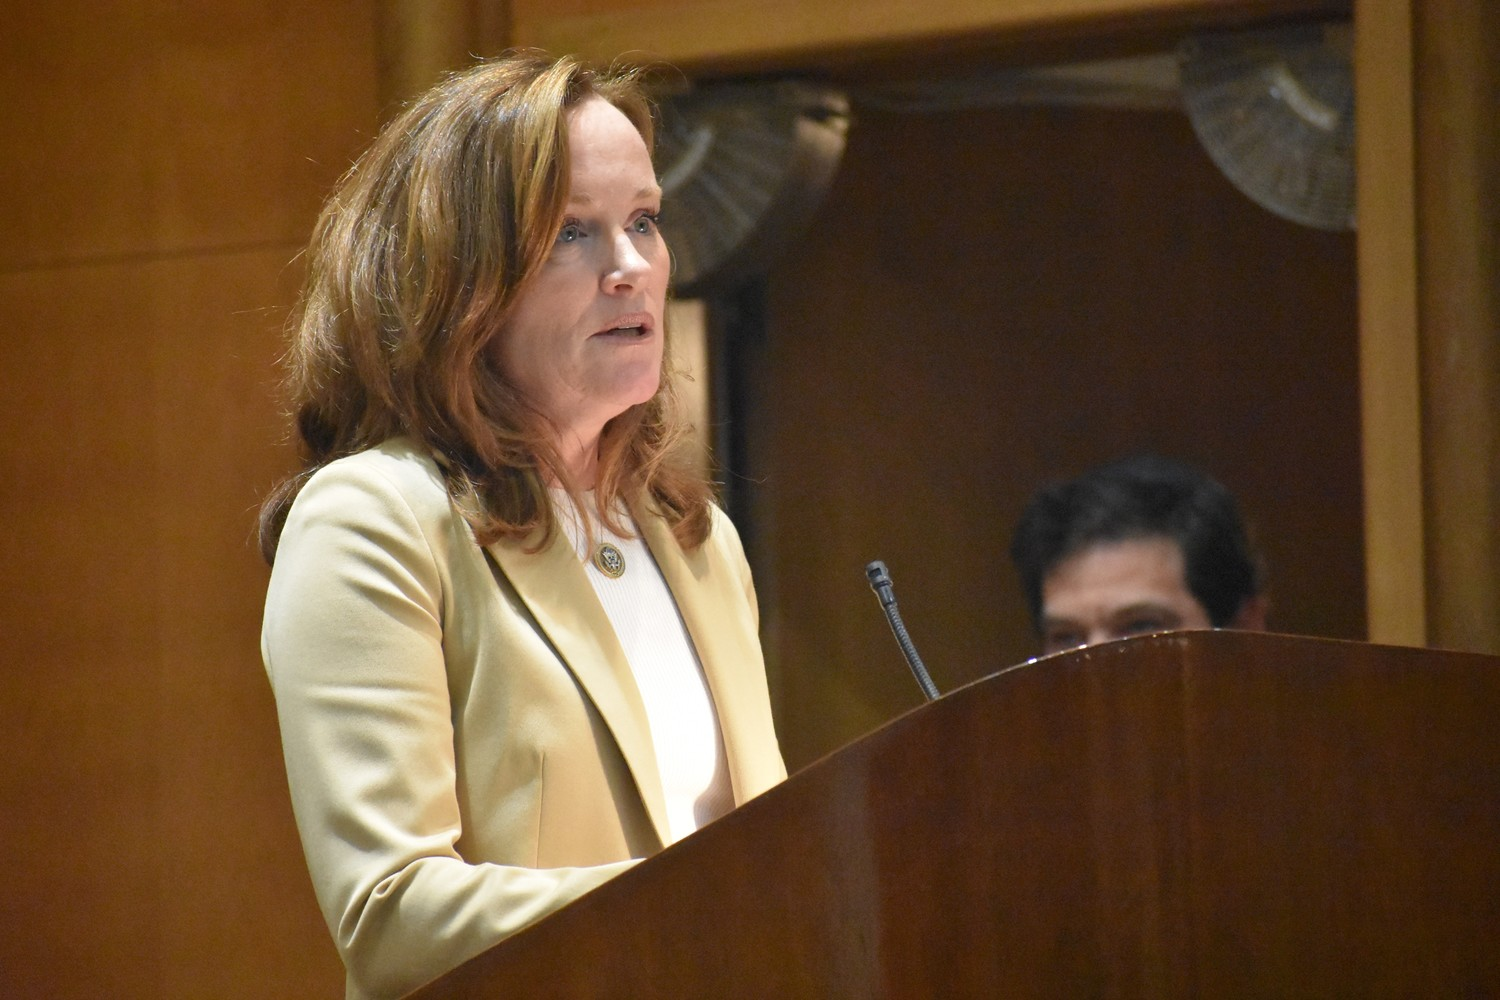 U.S. Rep. Kathleen Rice said the shooting shows the need for stricter gun laws.